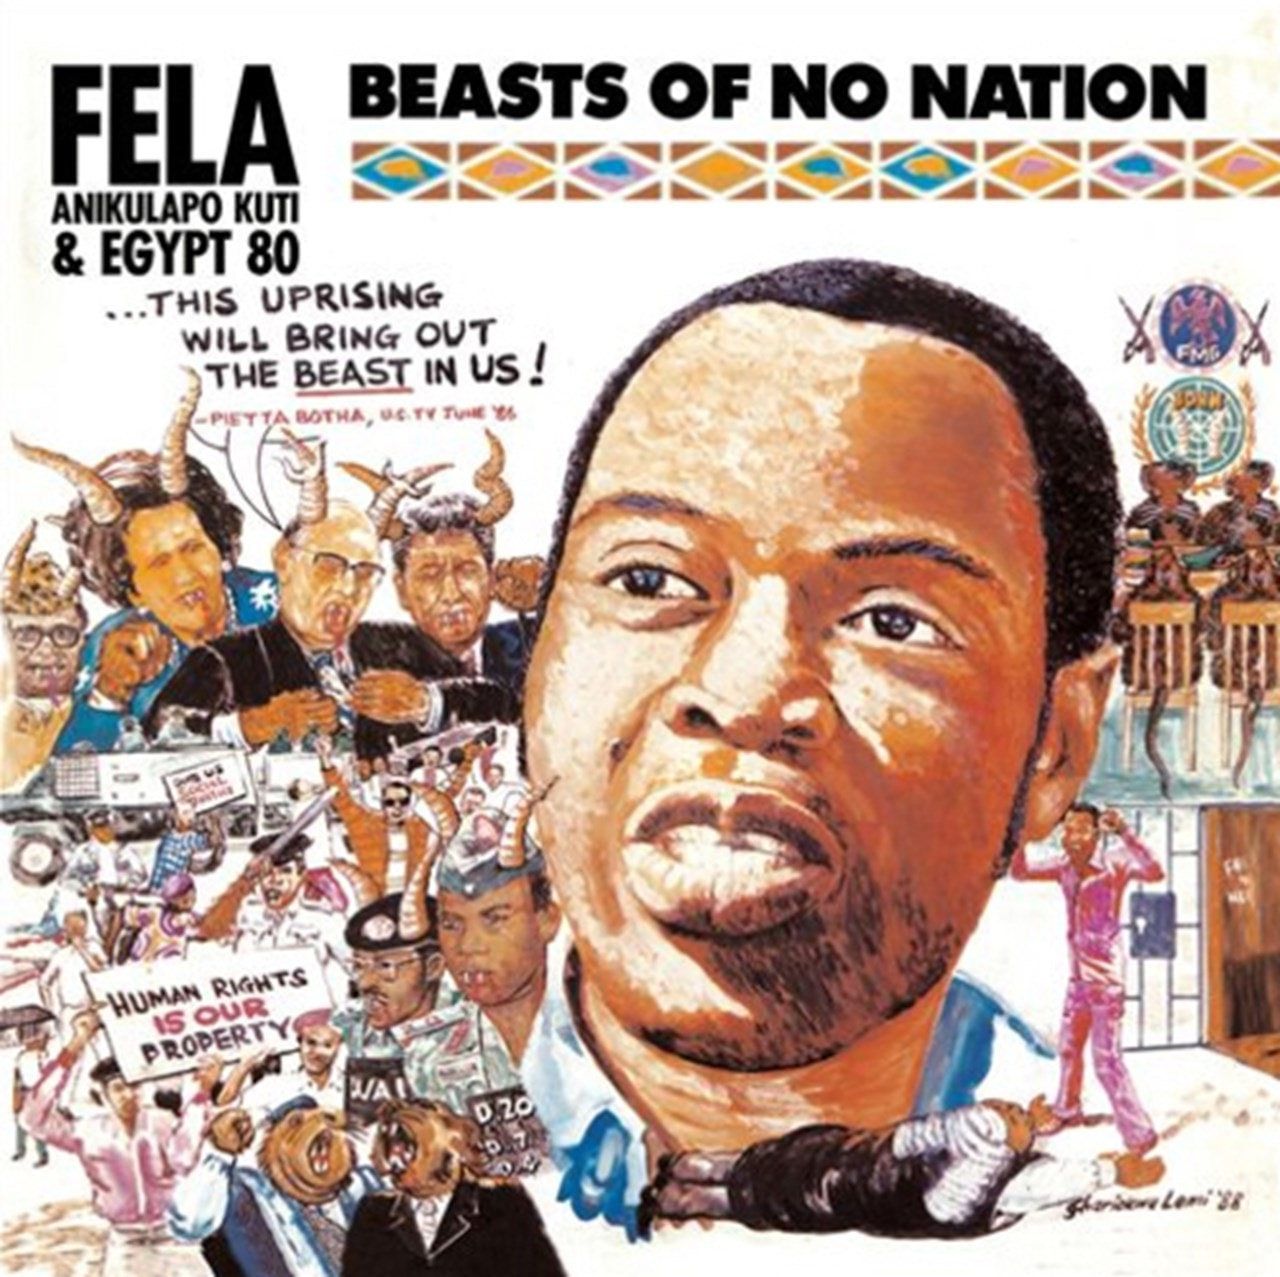 Beasts of No Nation - 1